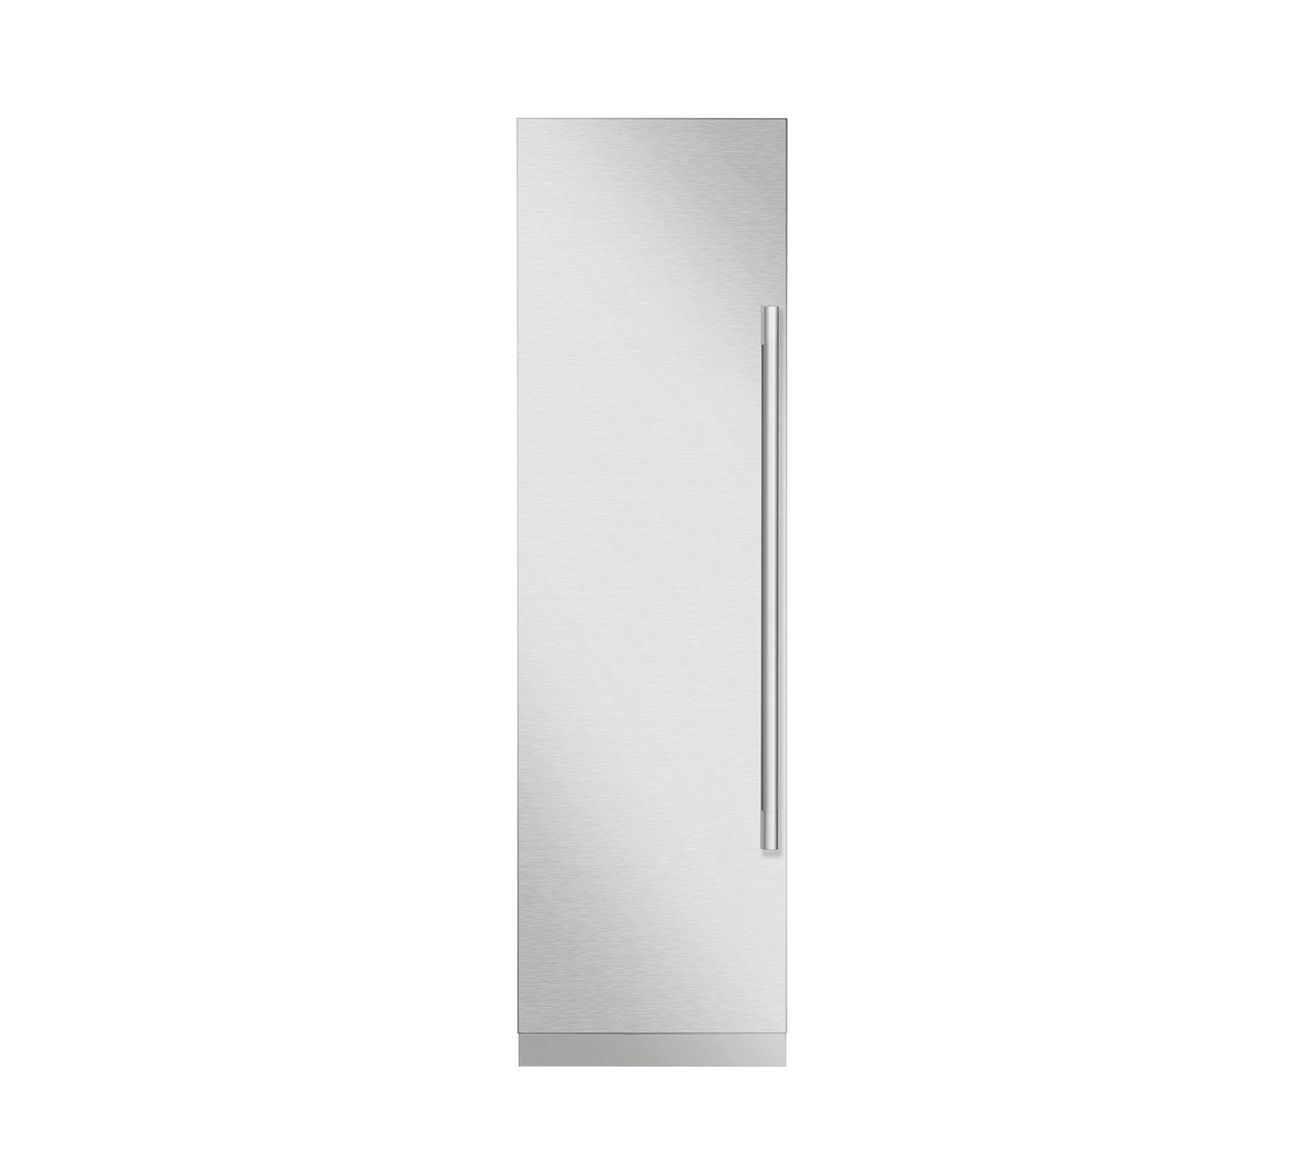 Signature Kitchen Suite | 24-inch Integrated Column Freezer